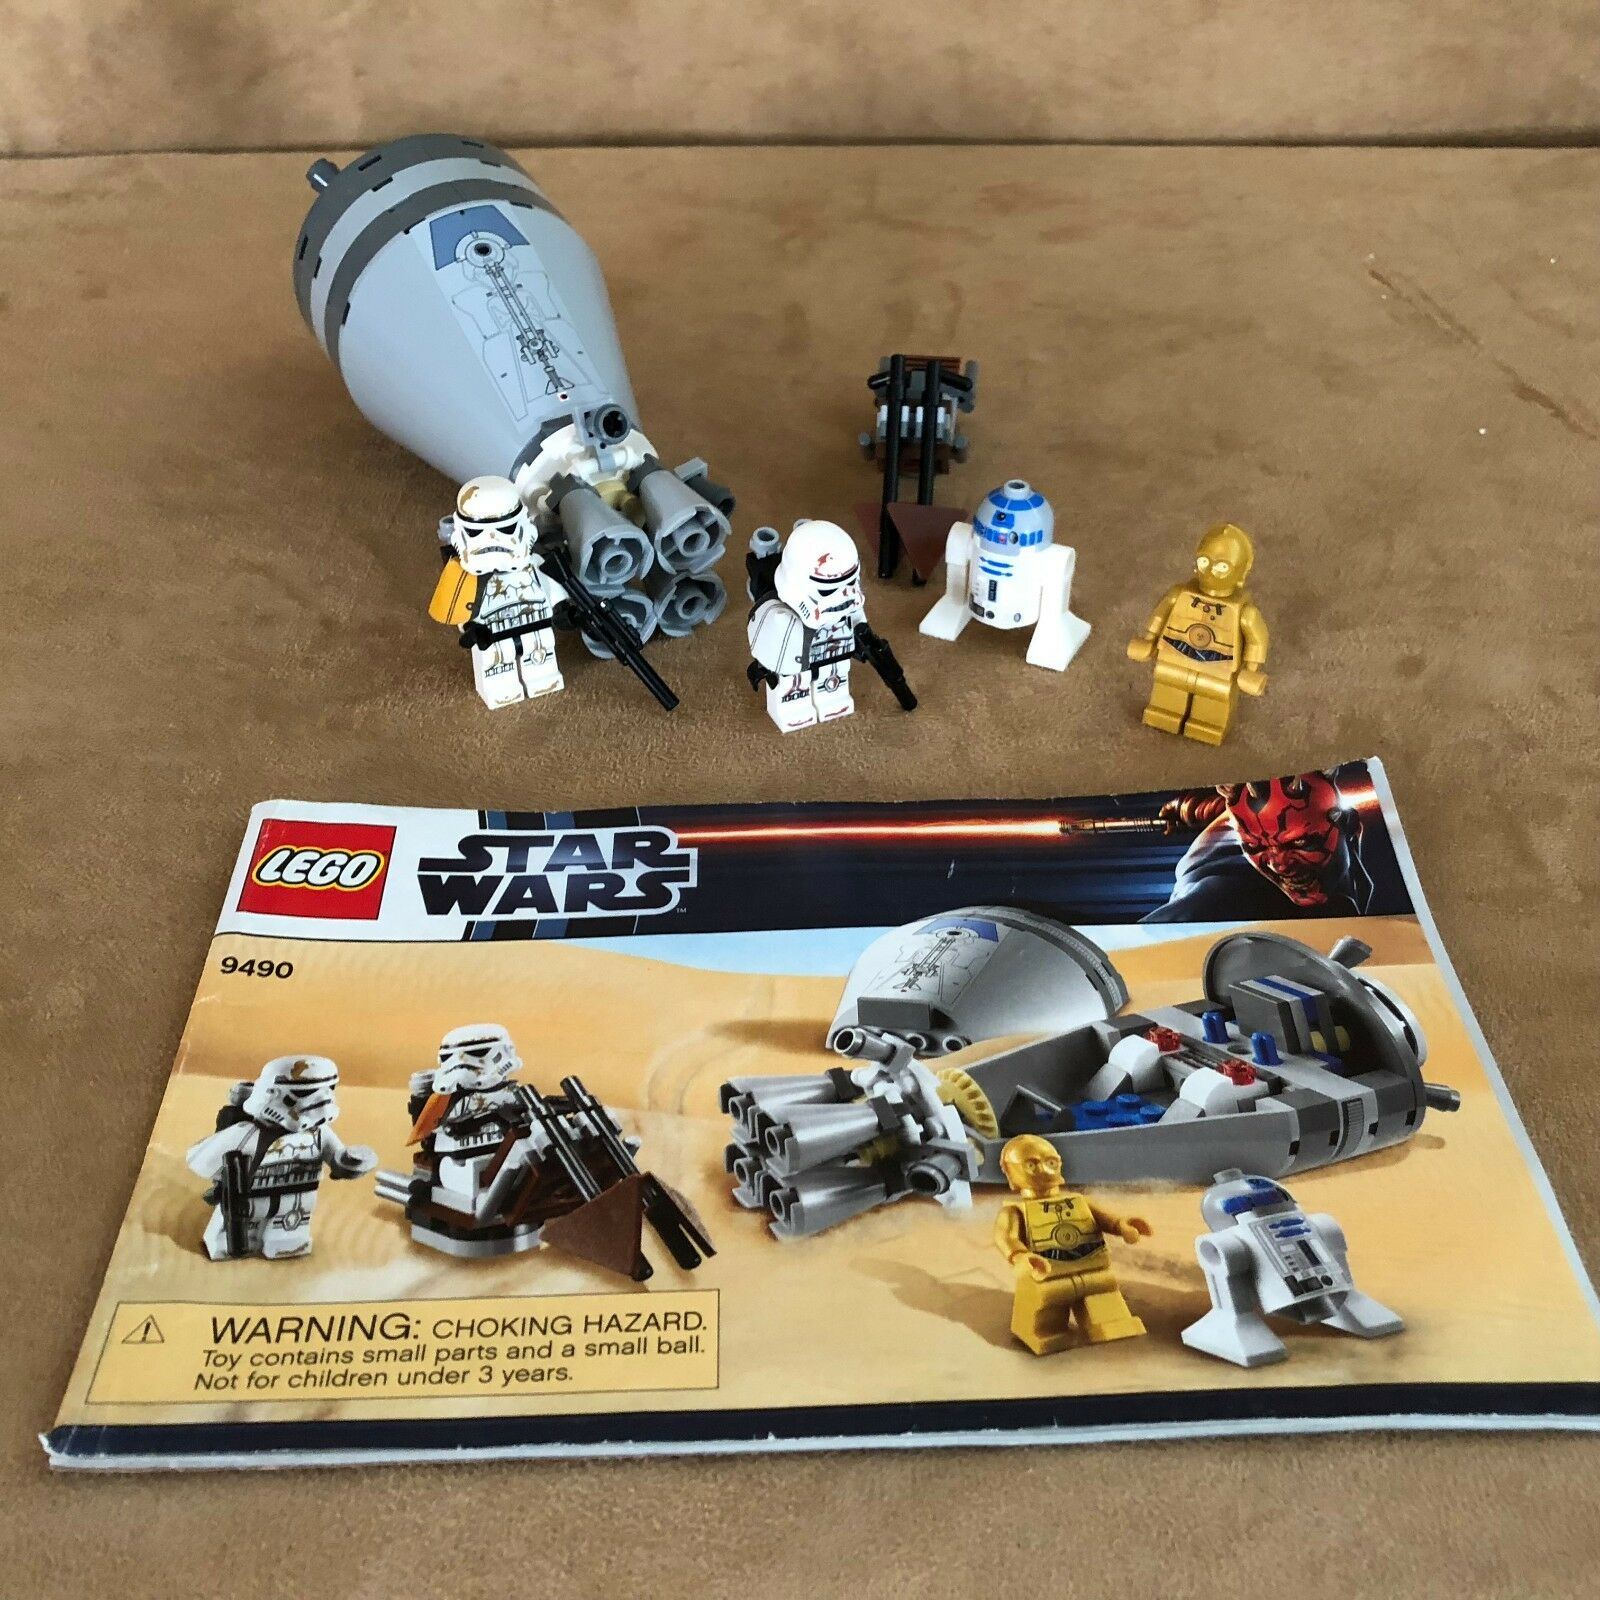 9490 LEGO Complete Star Wars Droid Escape instructions minifigures